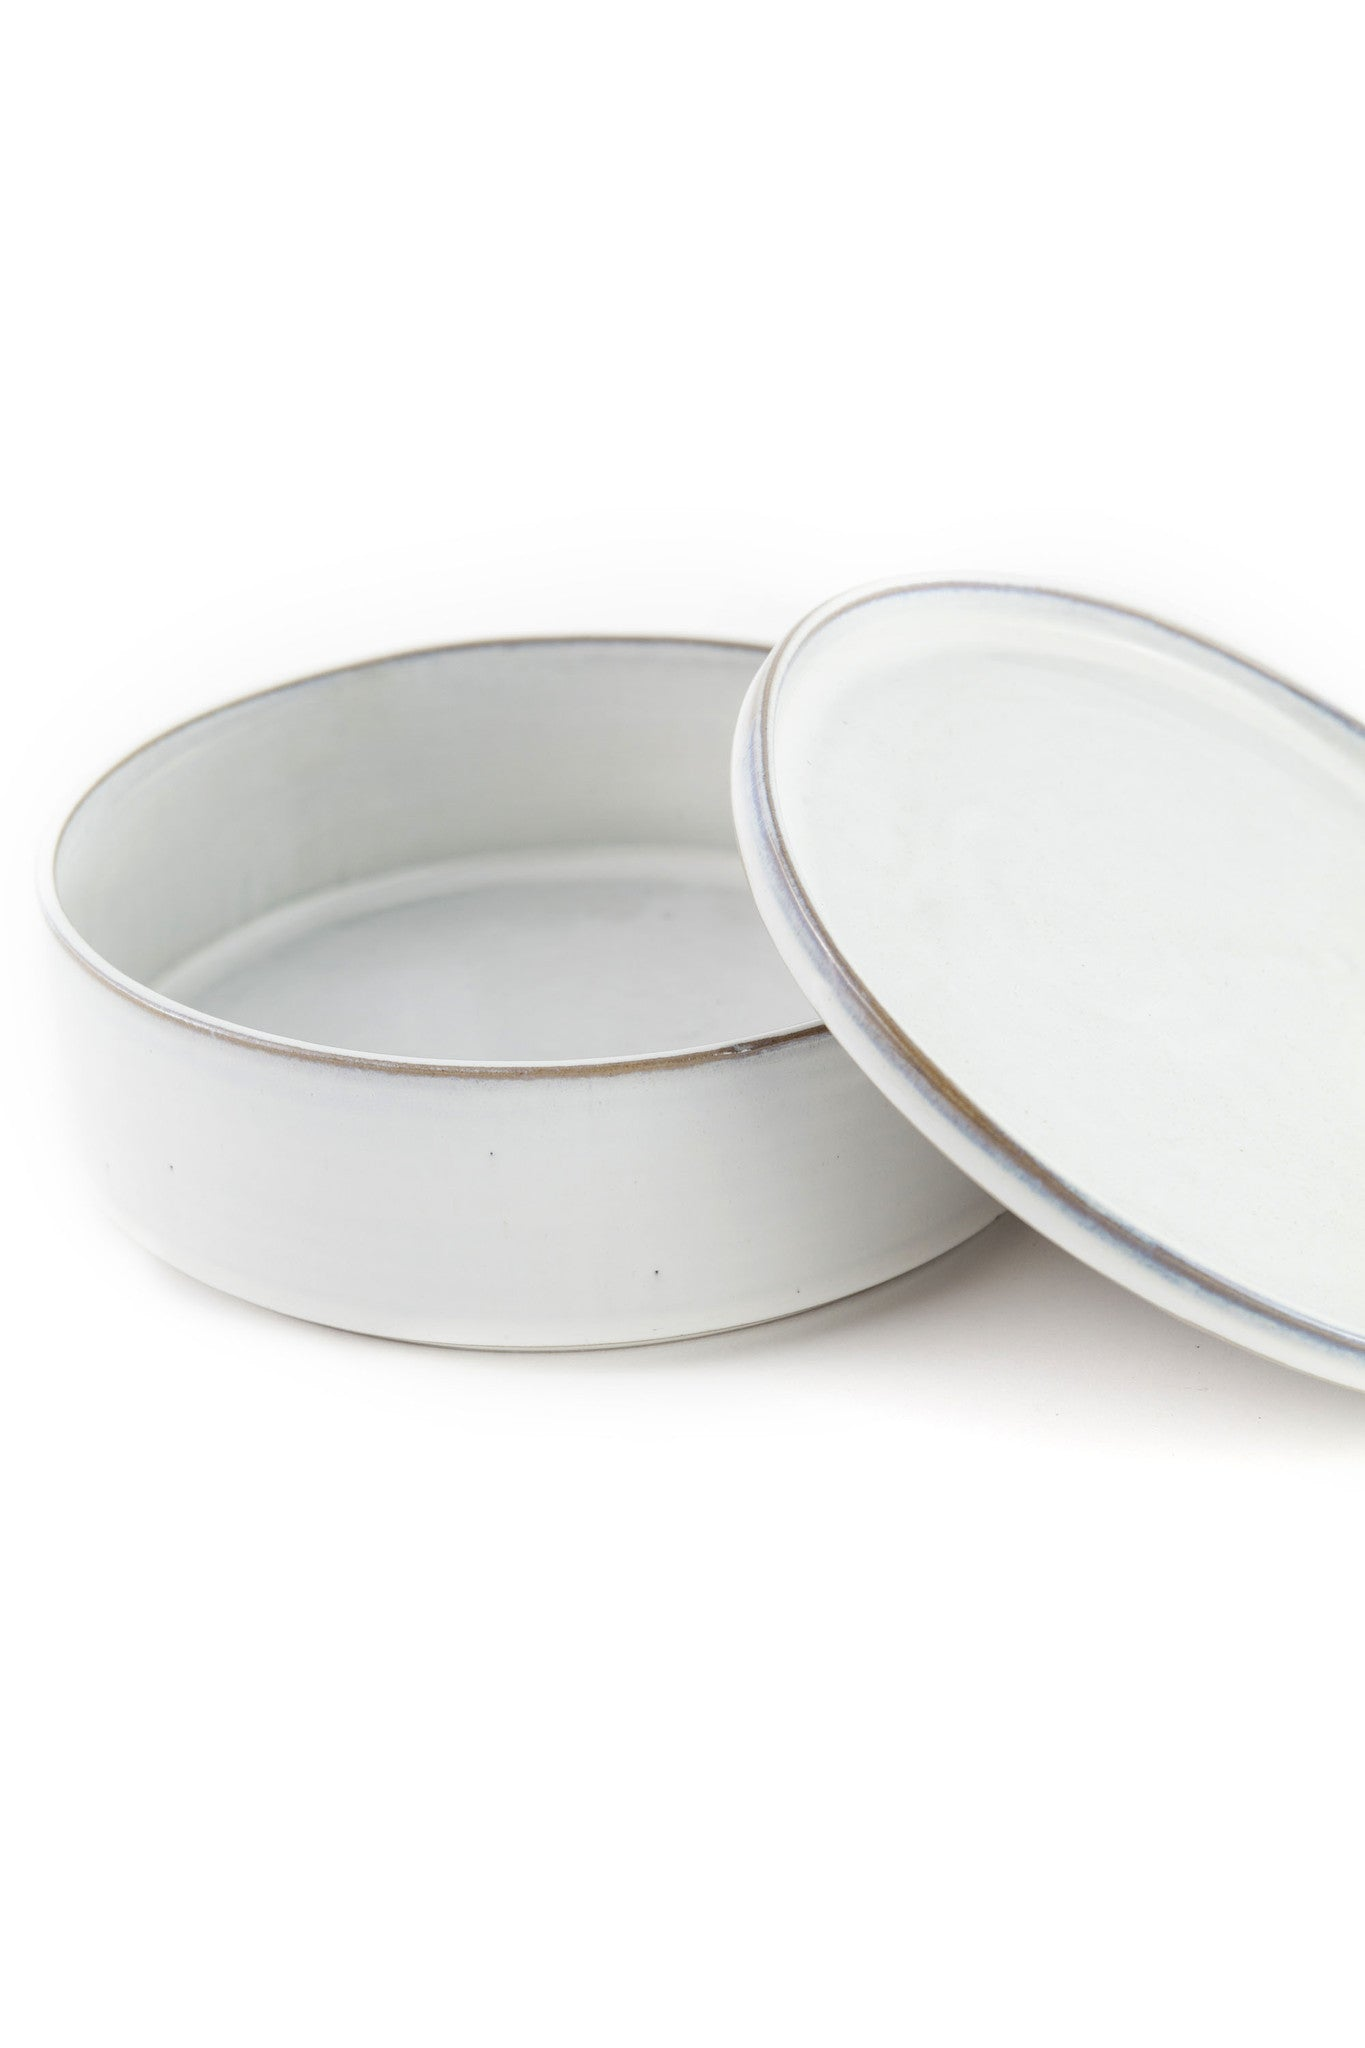 Yarnnakarn Rustic Salad Bowl and Plate Lid Set Small